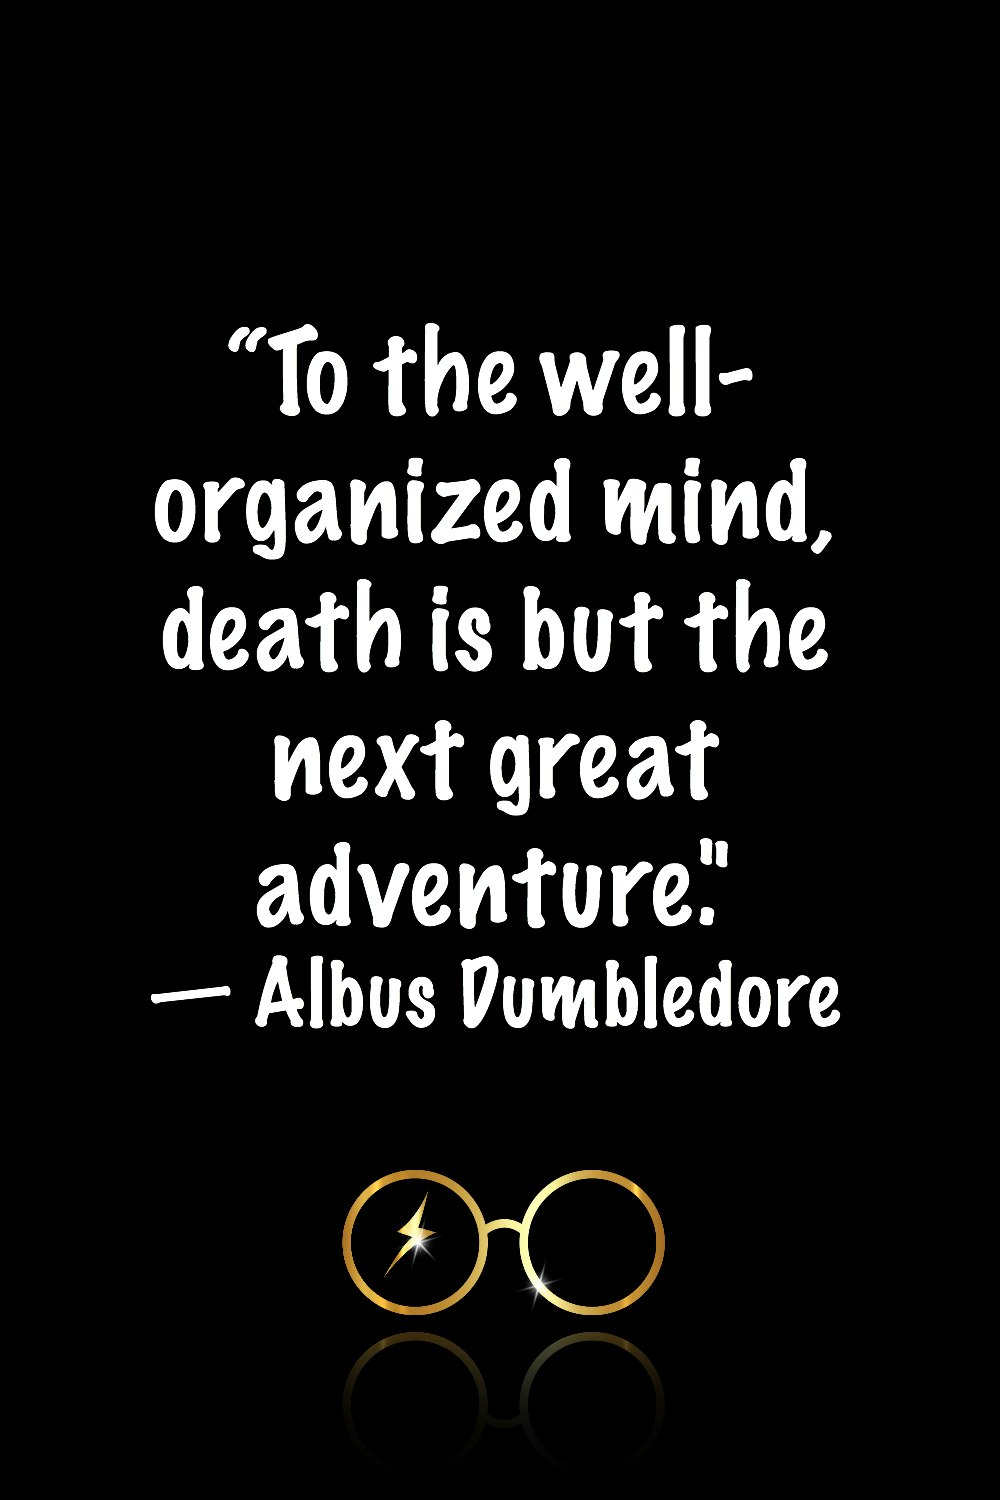 More Dumbledore quotes from Harry Potter